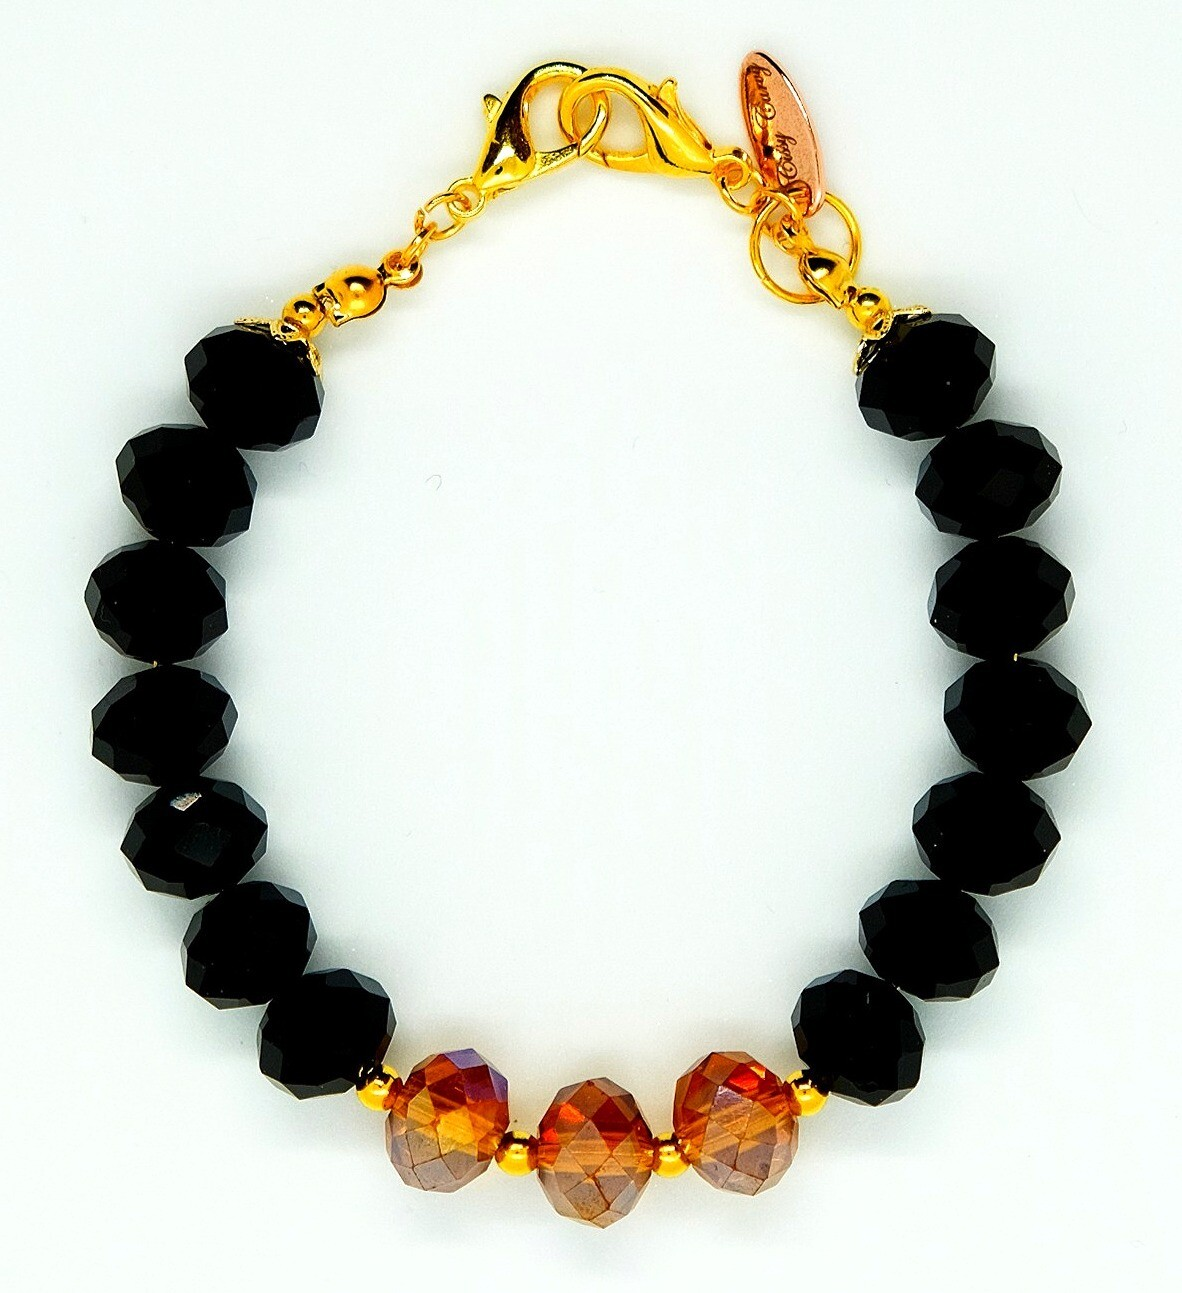 Bracelet & Face Mask Extender Dual Function (Akihiko - Black & Red Amethyst Beads, Gold Accessories & Durable Soft Wire String)